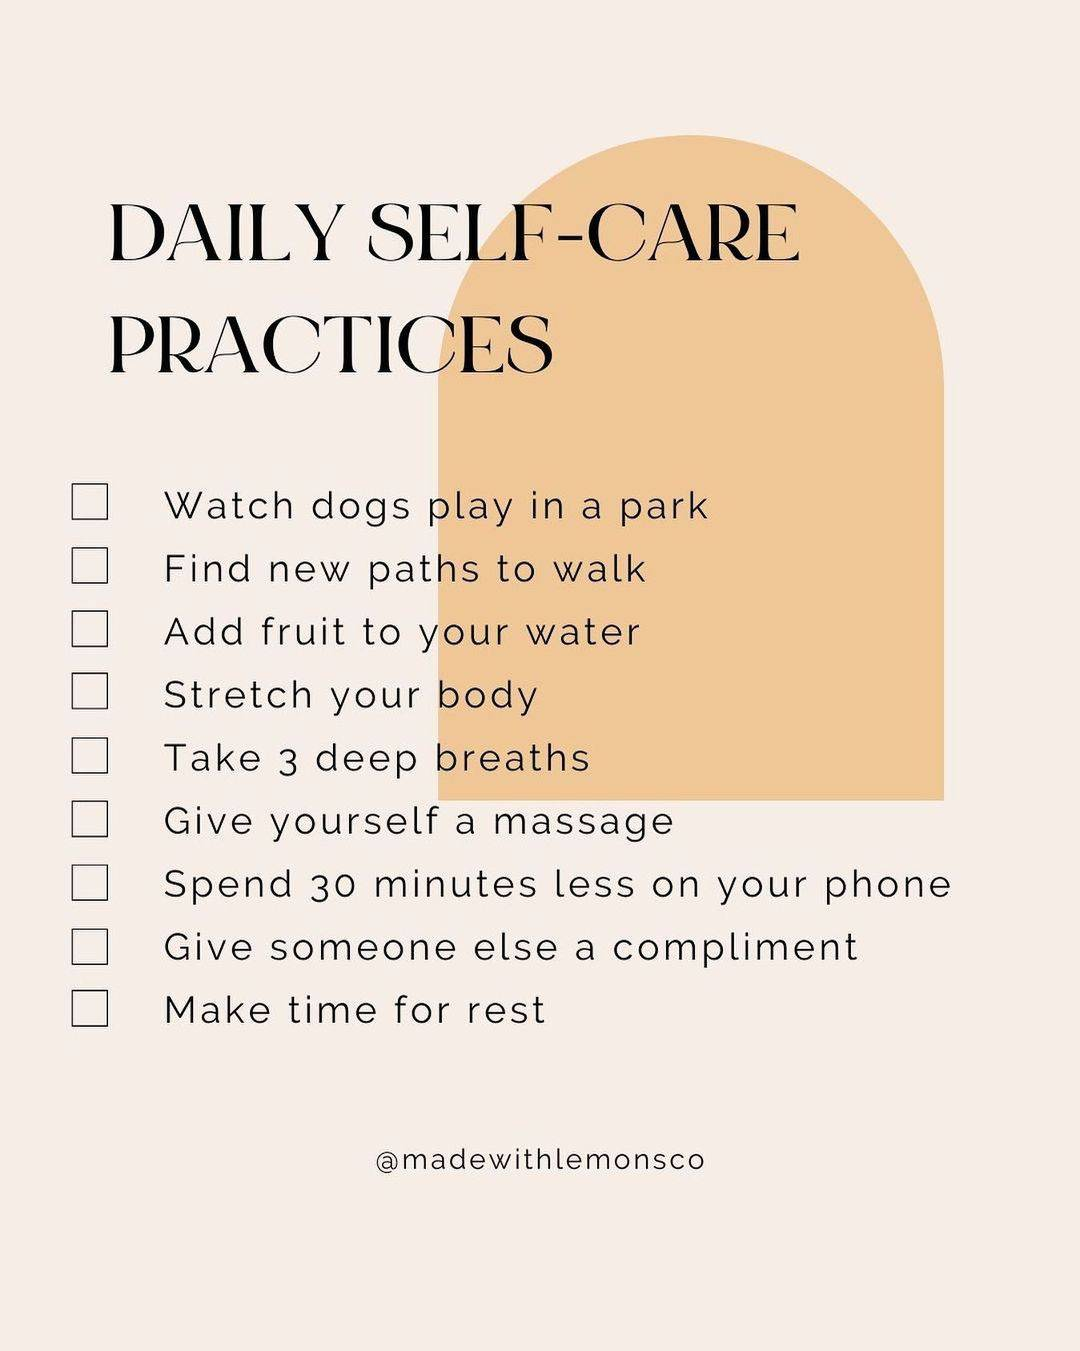 Daily self-care practices from Livia at Made With lemons